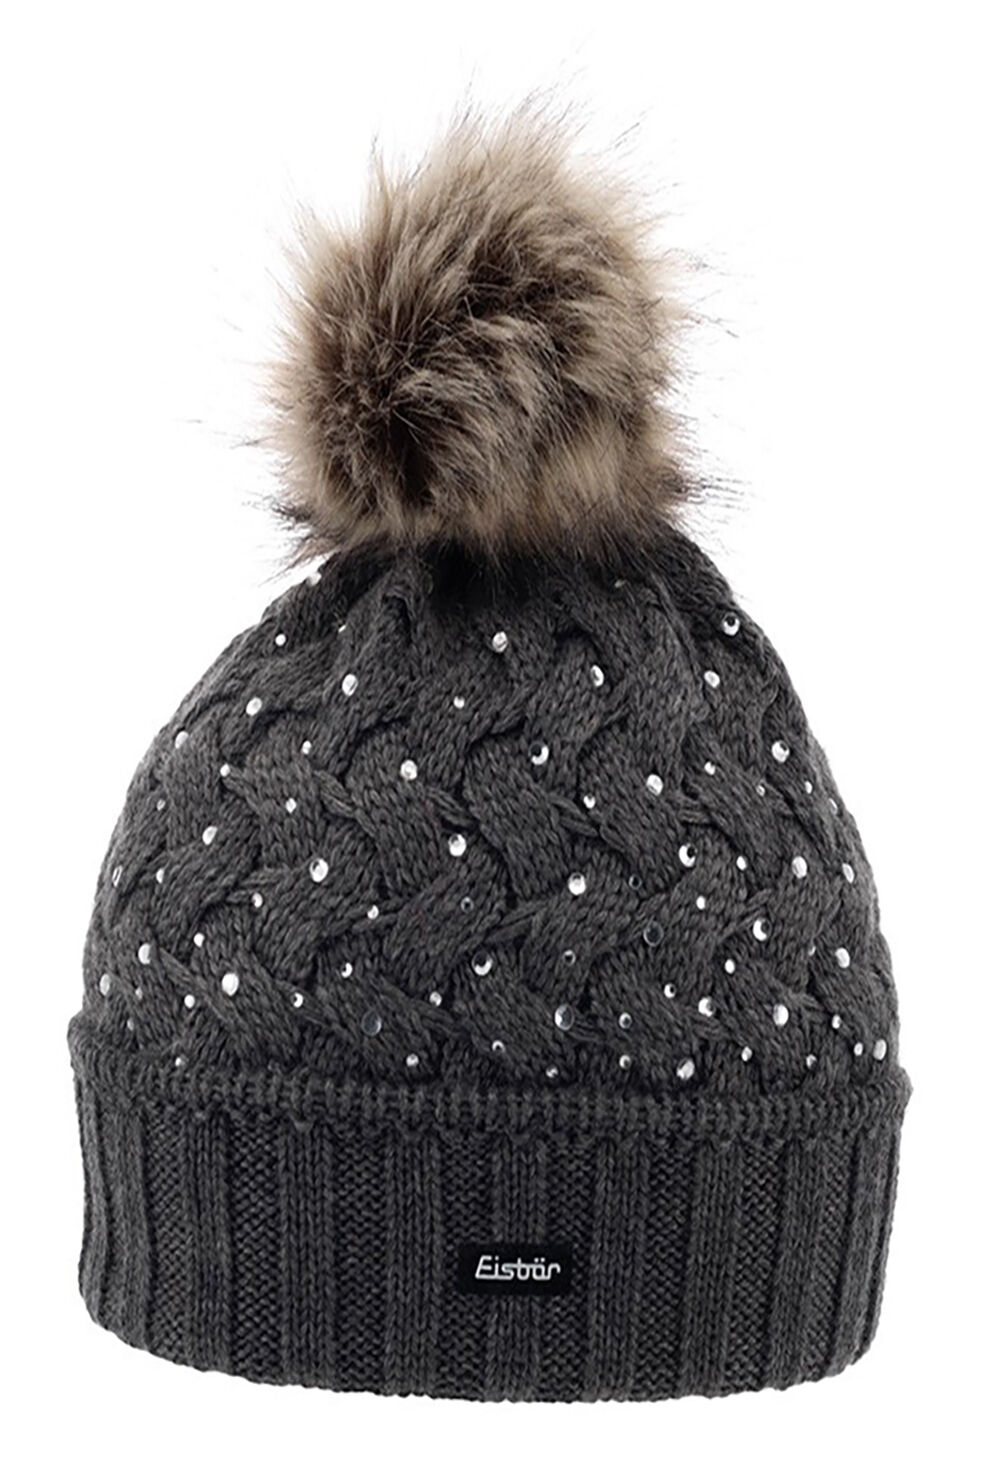 EISBAR ALICE LUX CRYSTAL with Faux Faux with Fur Pompon Winter Merino Wool Sports Ski Hat 6502ce